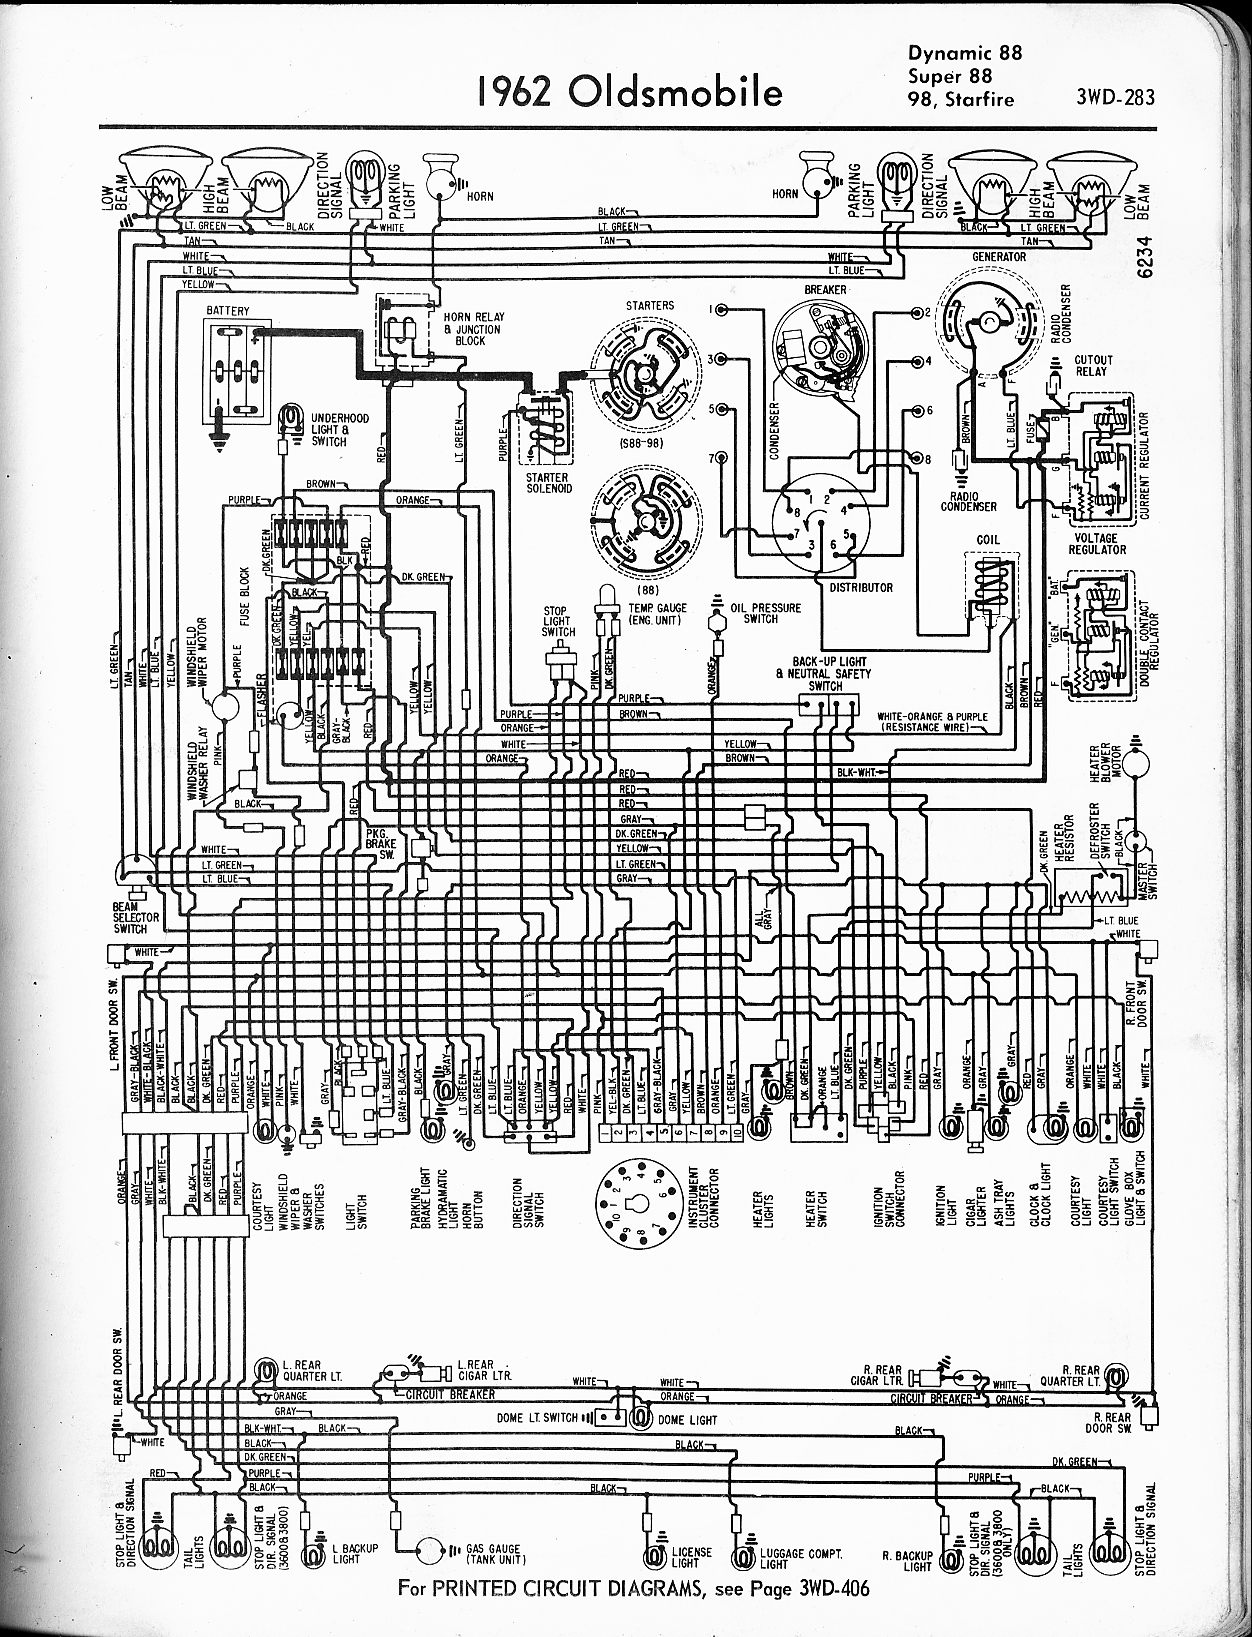 oldsmobile engine schematics wiring diagram for you • oldsmobile wiring diagrams the old car manual project rh oldcarmanualproject com oldsmobile 442 engine oldsmobile engine colors